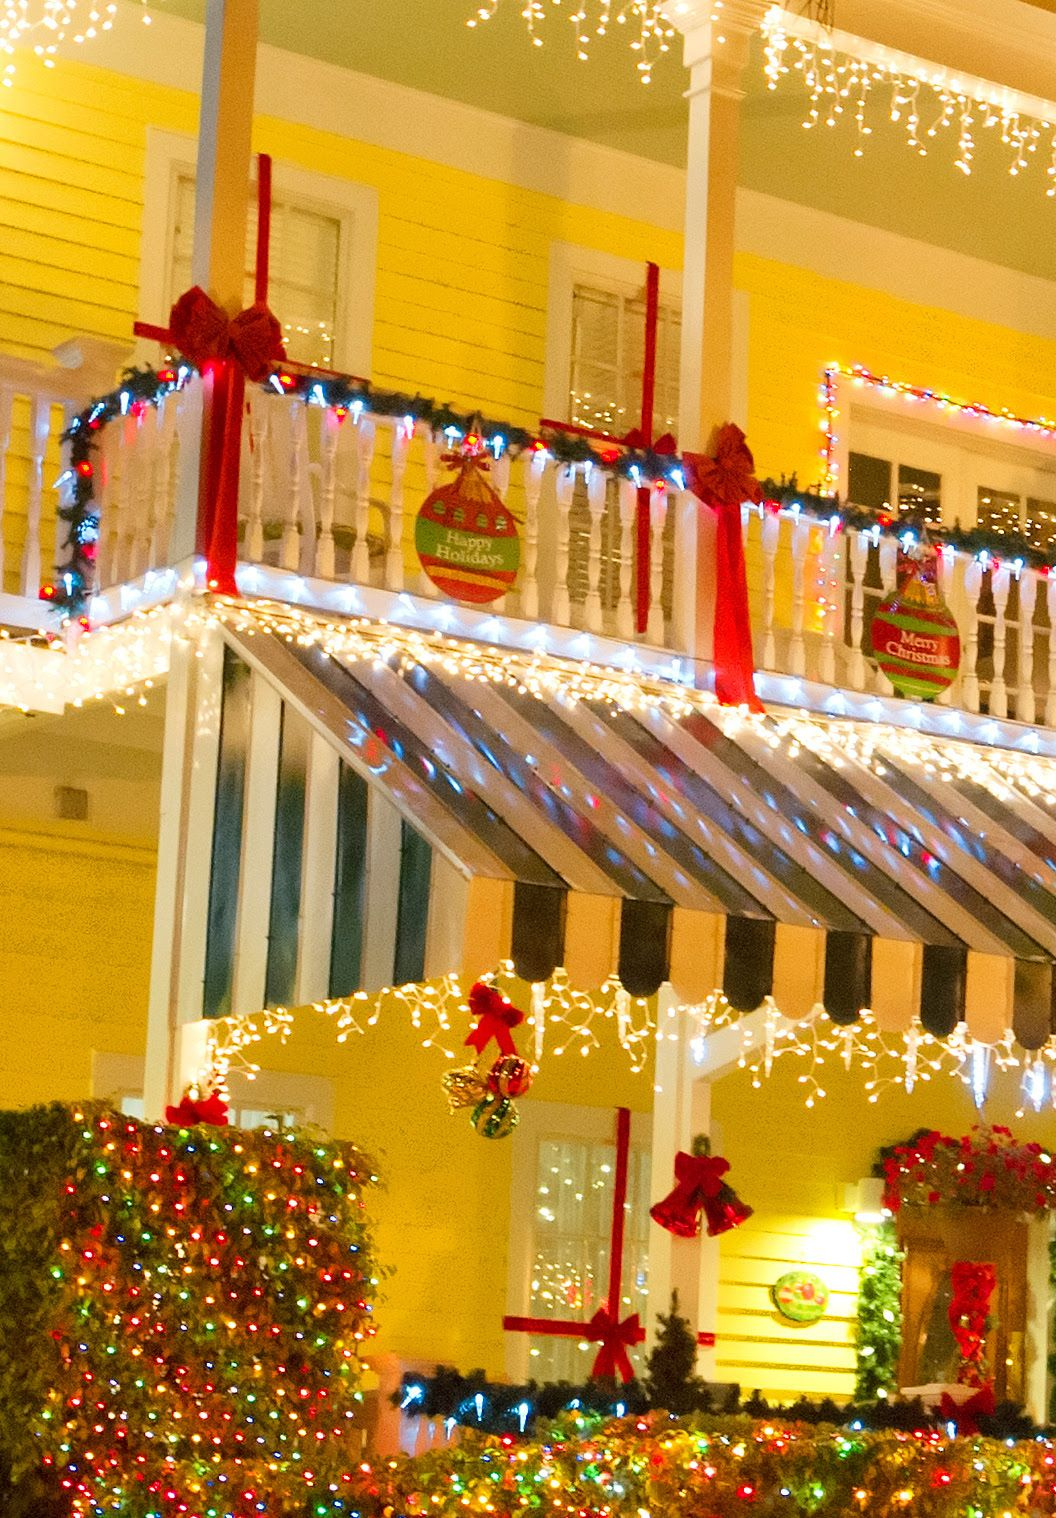 New Home Interior Design Key West Vacation Home: Striped Green And White Awnings Are Like Green Candy Cane Back Drops For #KeyWestChristmas